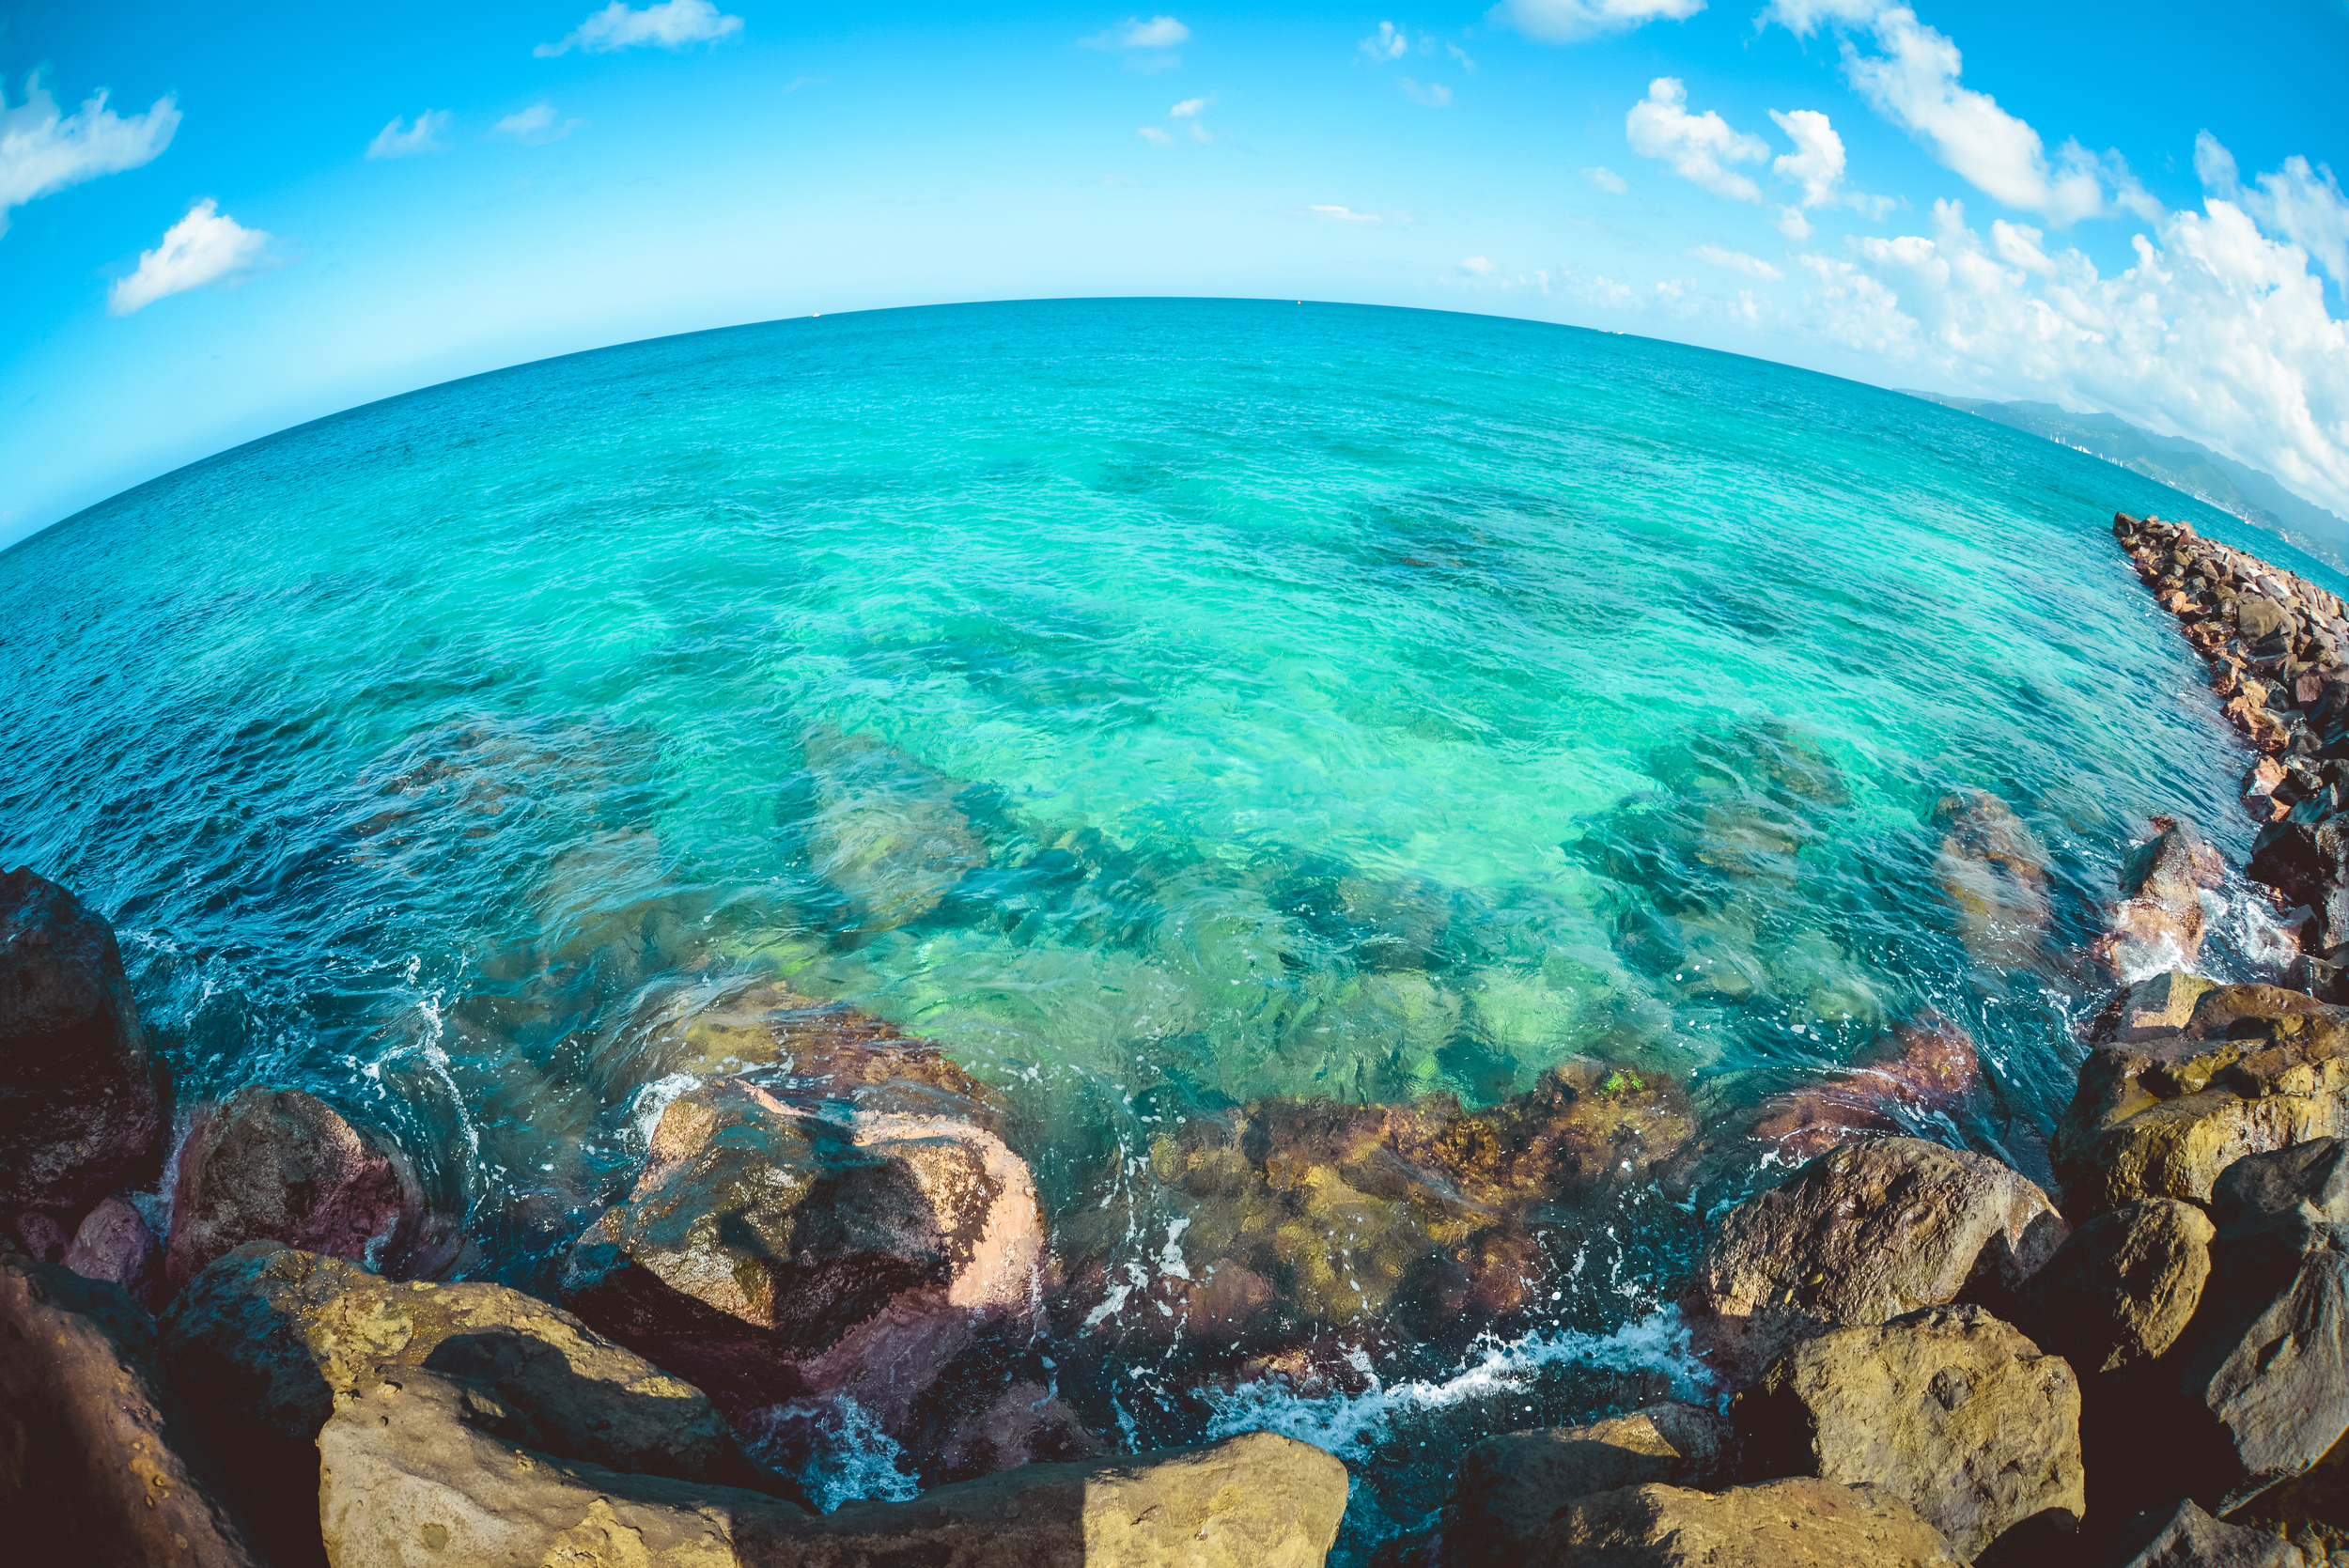 The vibrant turquoise waters of the Caribbean!